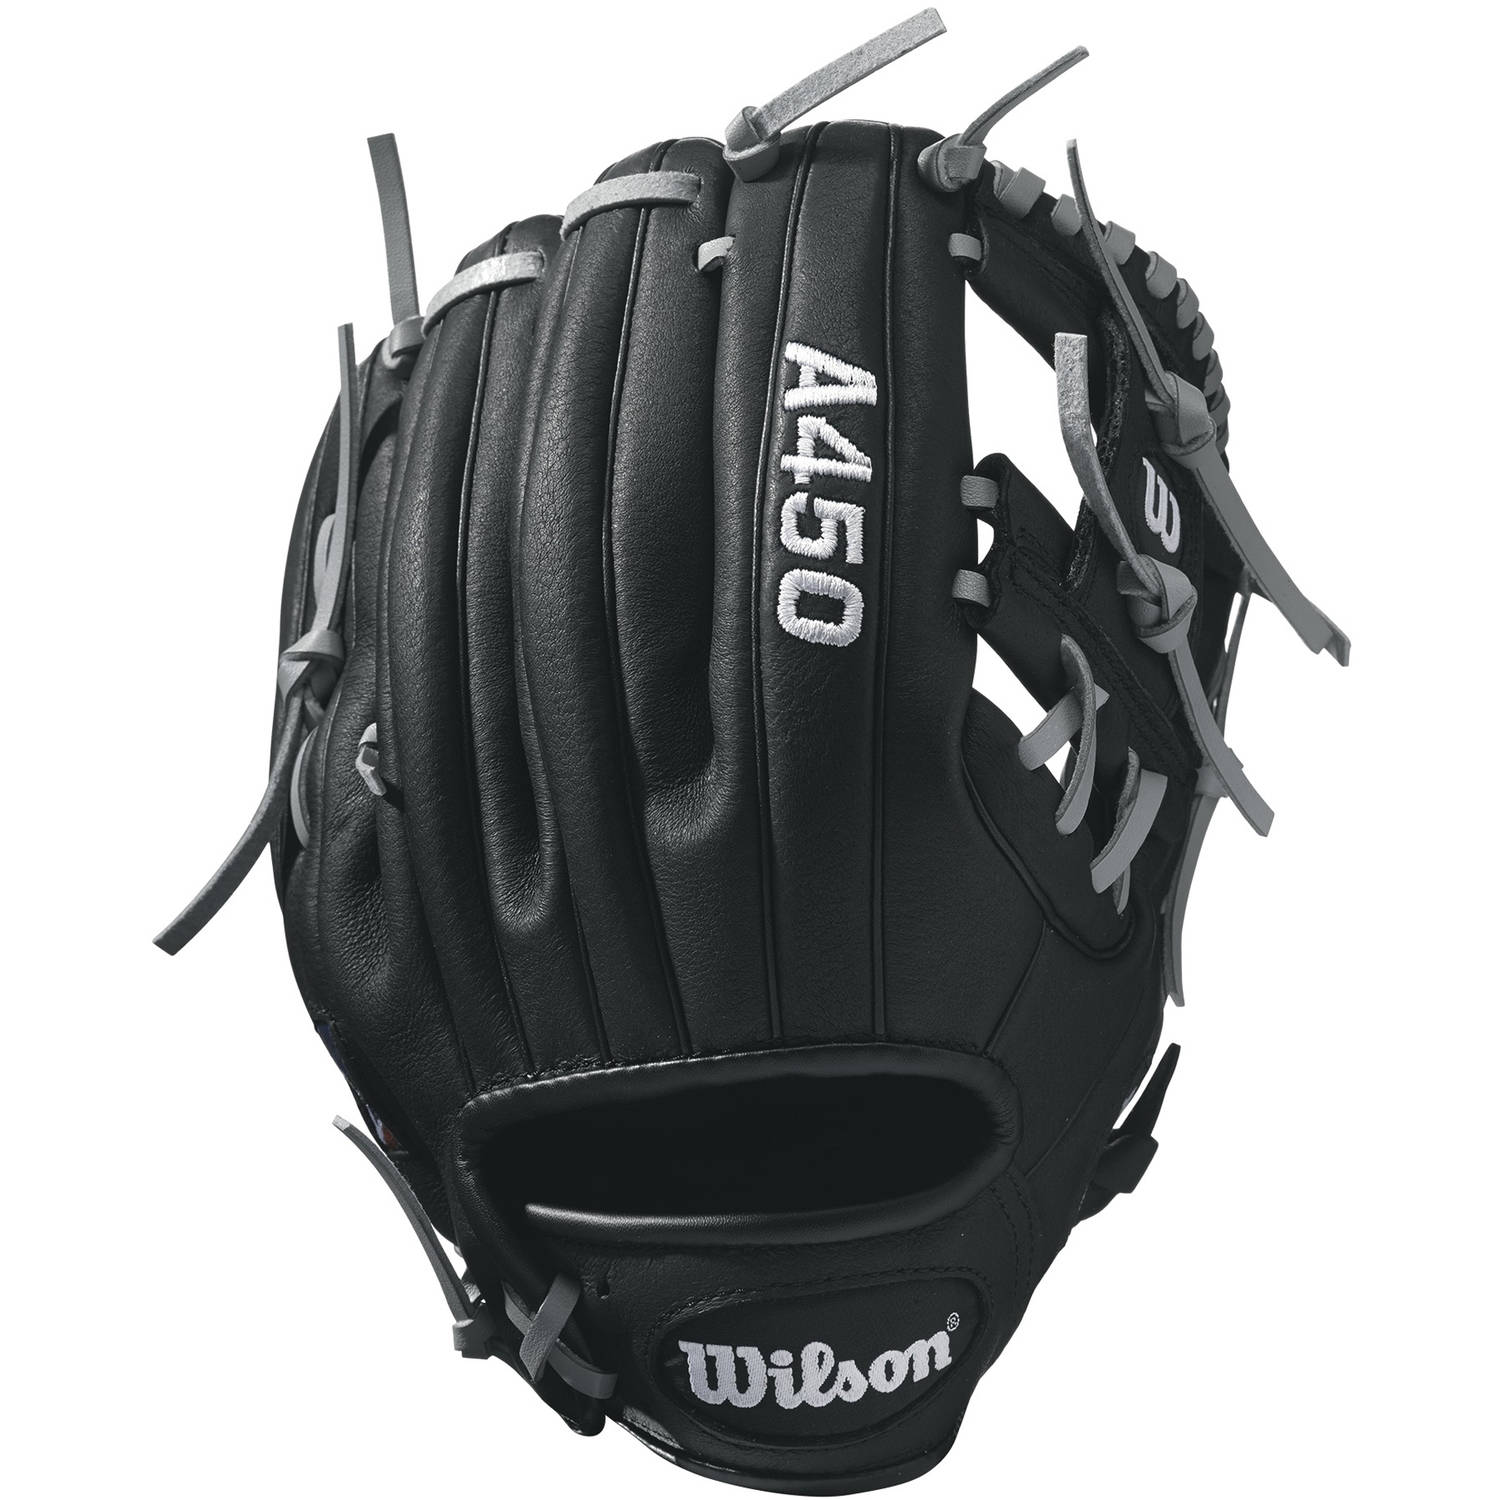 Wilson Sporting Goods A450 Advisory Staff Pedroia All-Position Baseball Glove, 10.75""